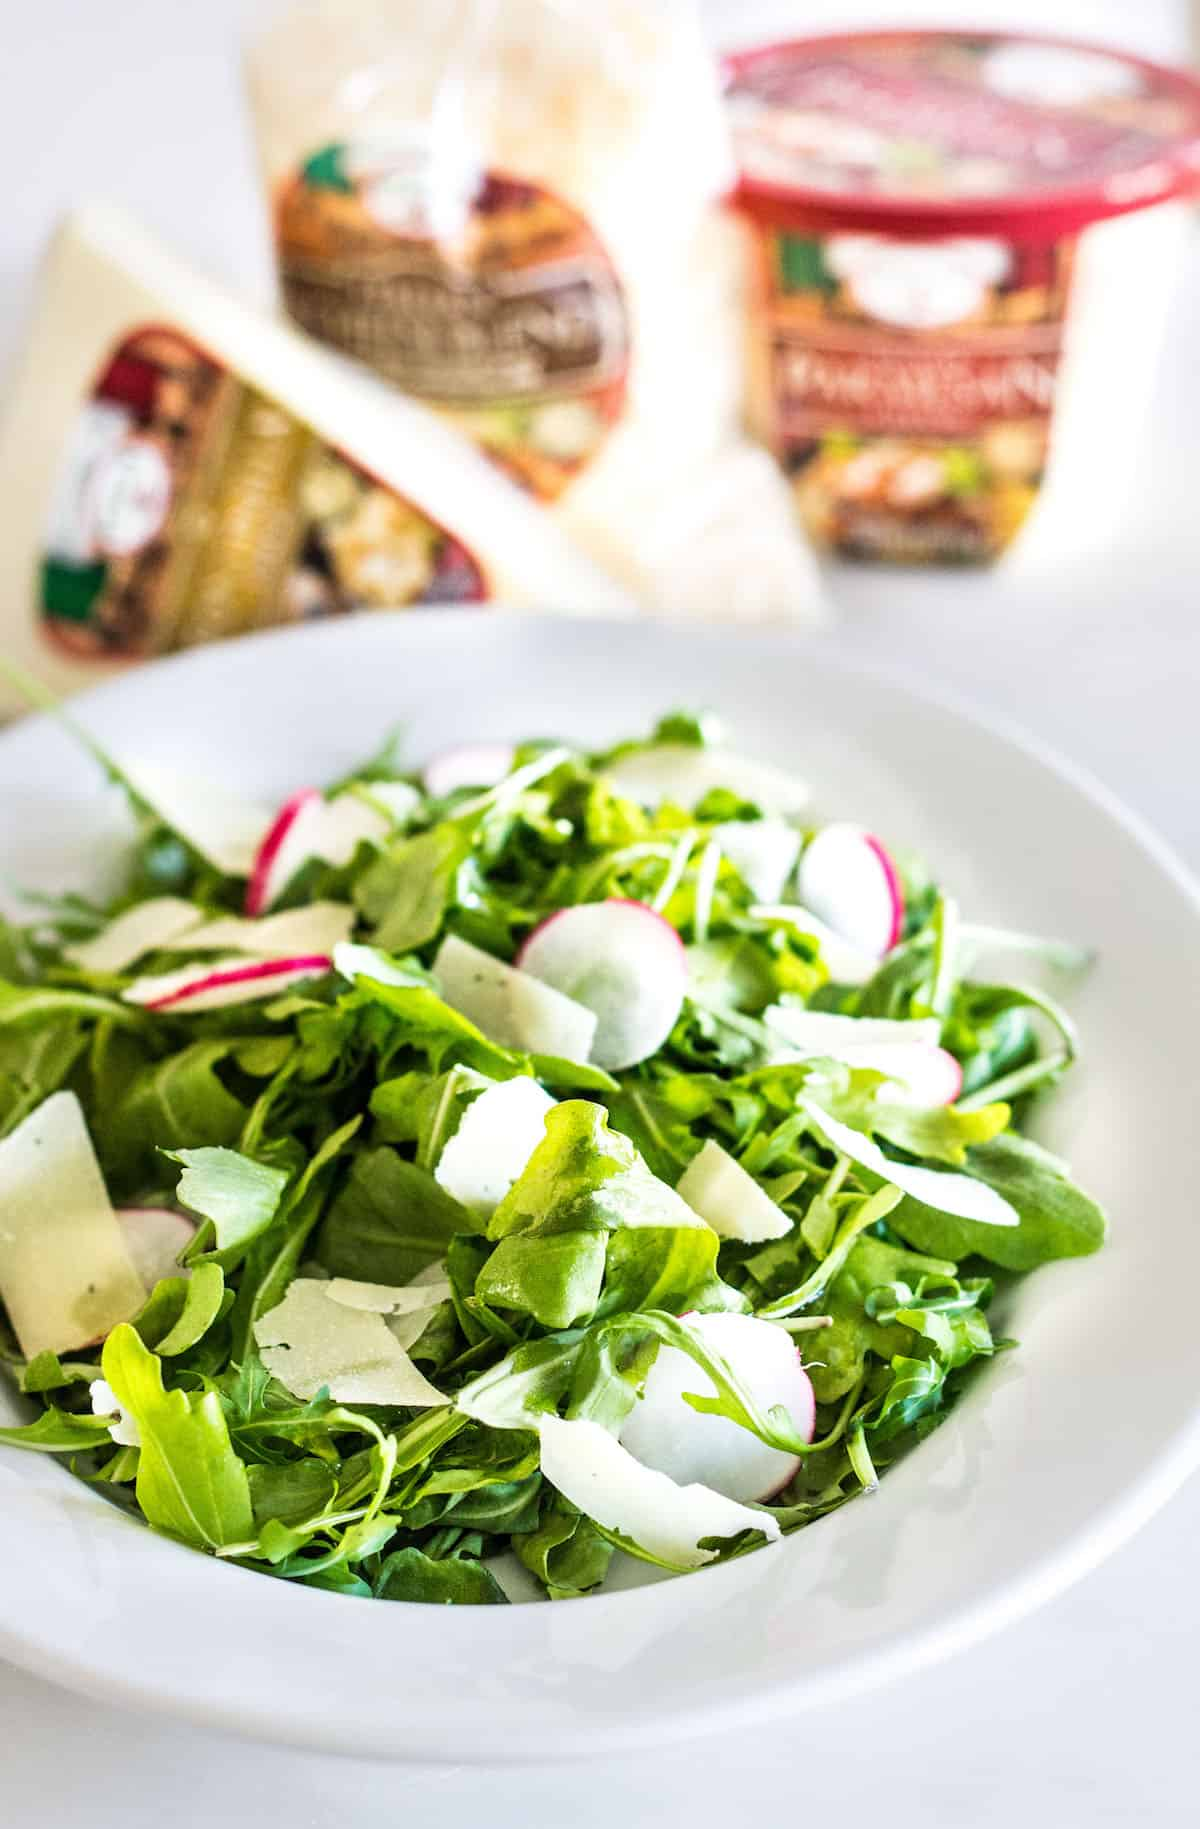 Arugula Salad with Parmesan - Mon Petit Four